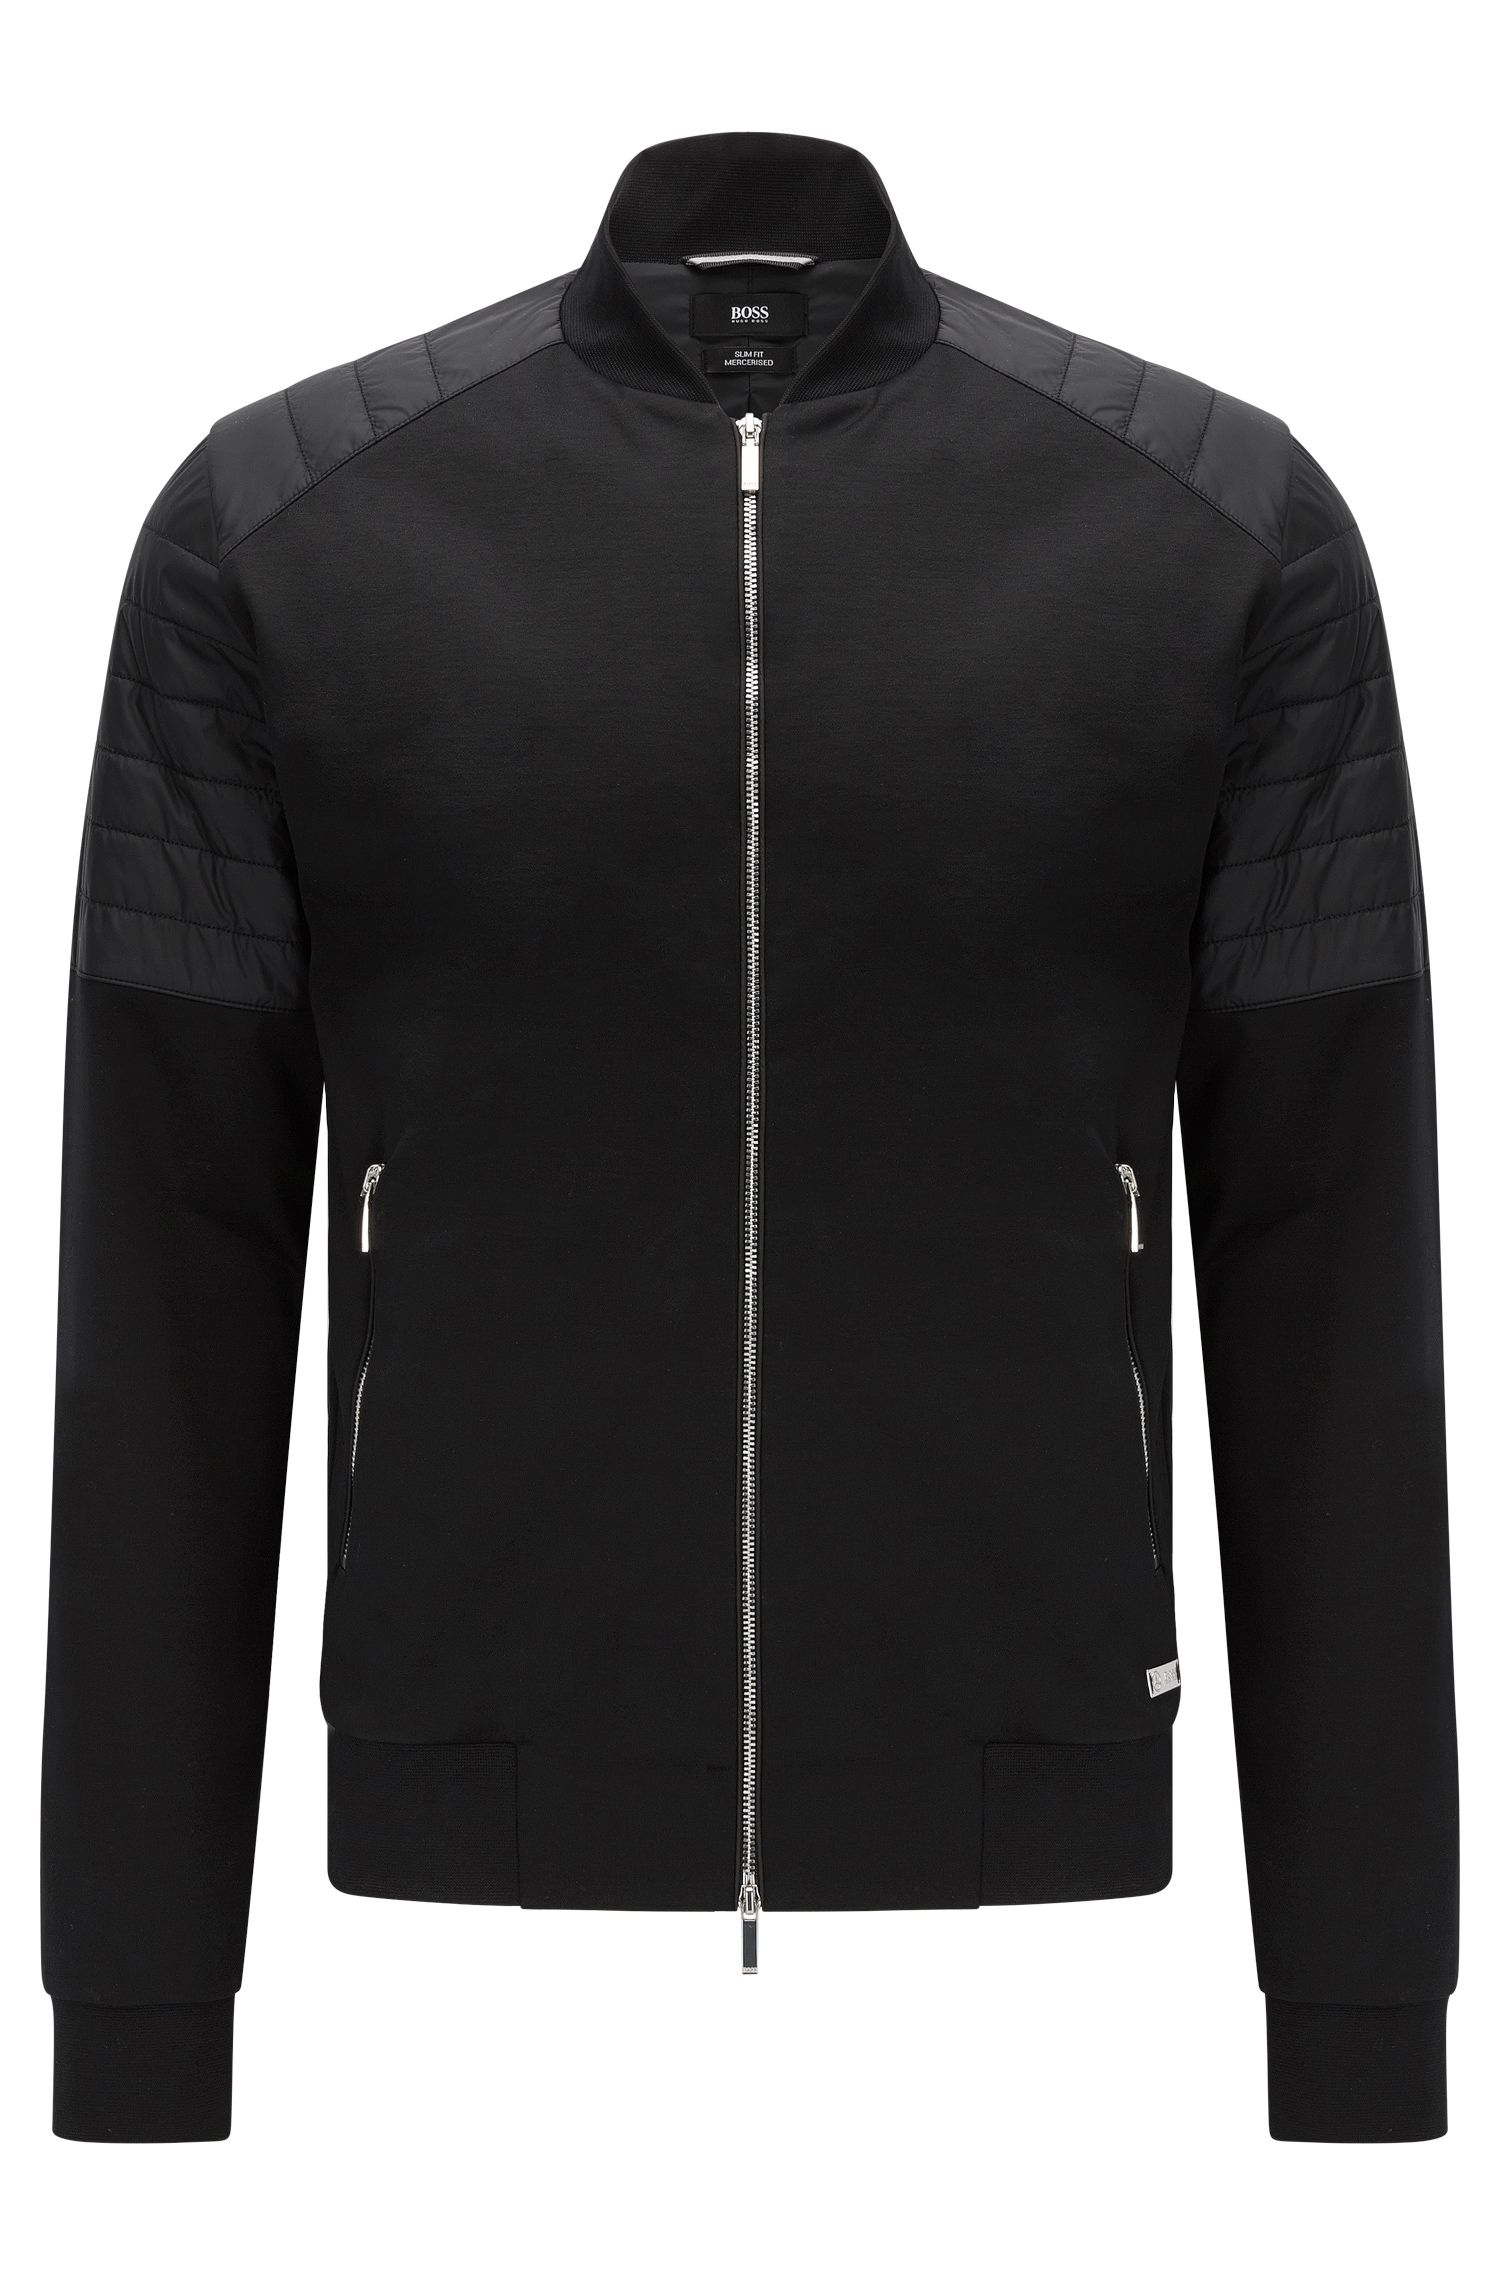 Slim-fit sweatshirt jacket in mercerised stretch cotton: 'Salea 07' from the Mercedes-Benz Collection